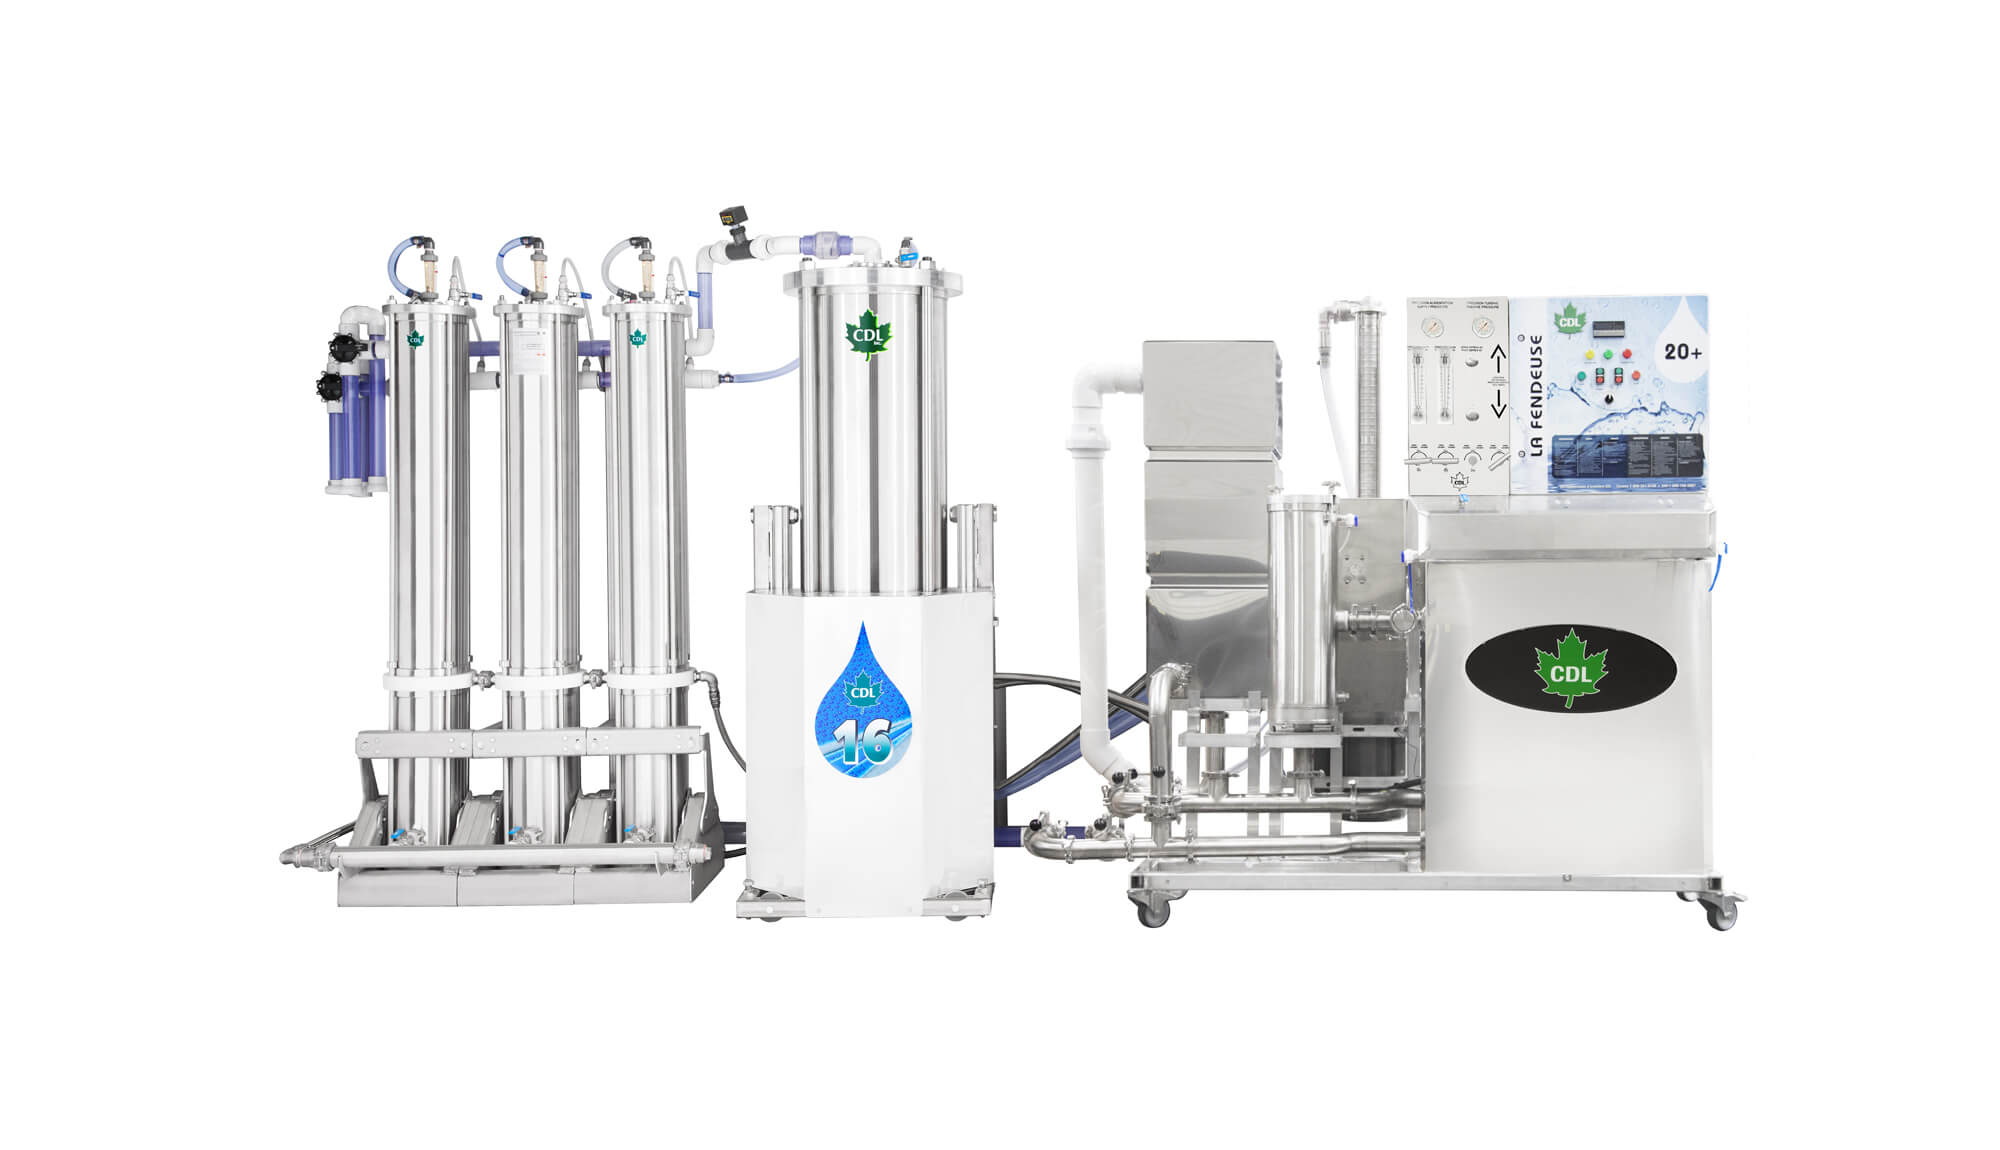 concentrateurs 20 + CDL 20 + reverse osmosis